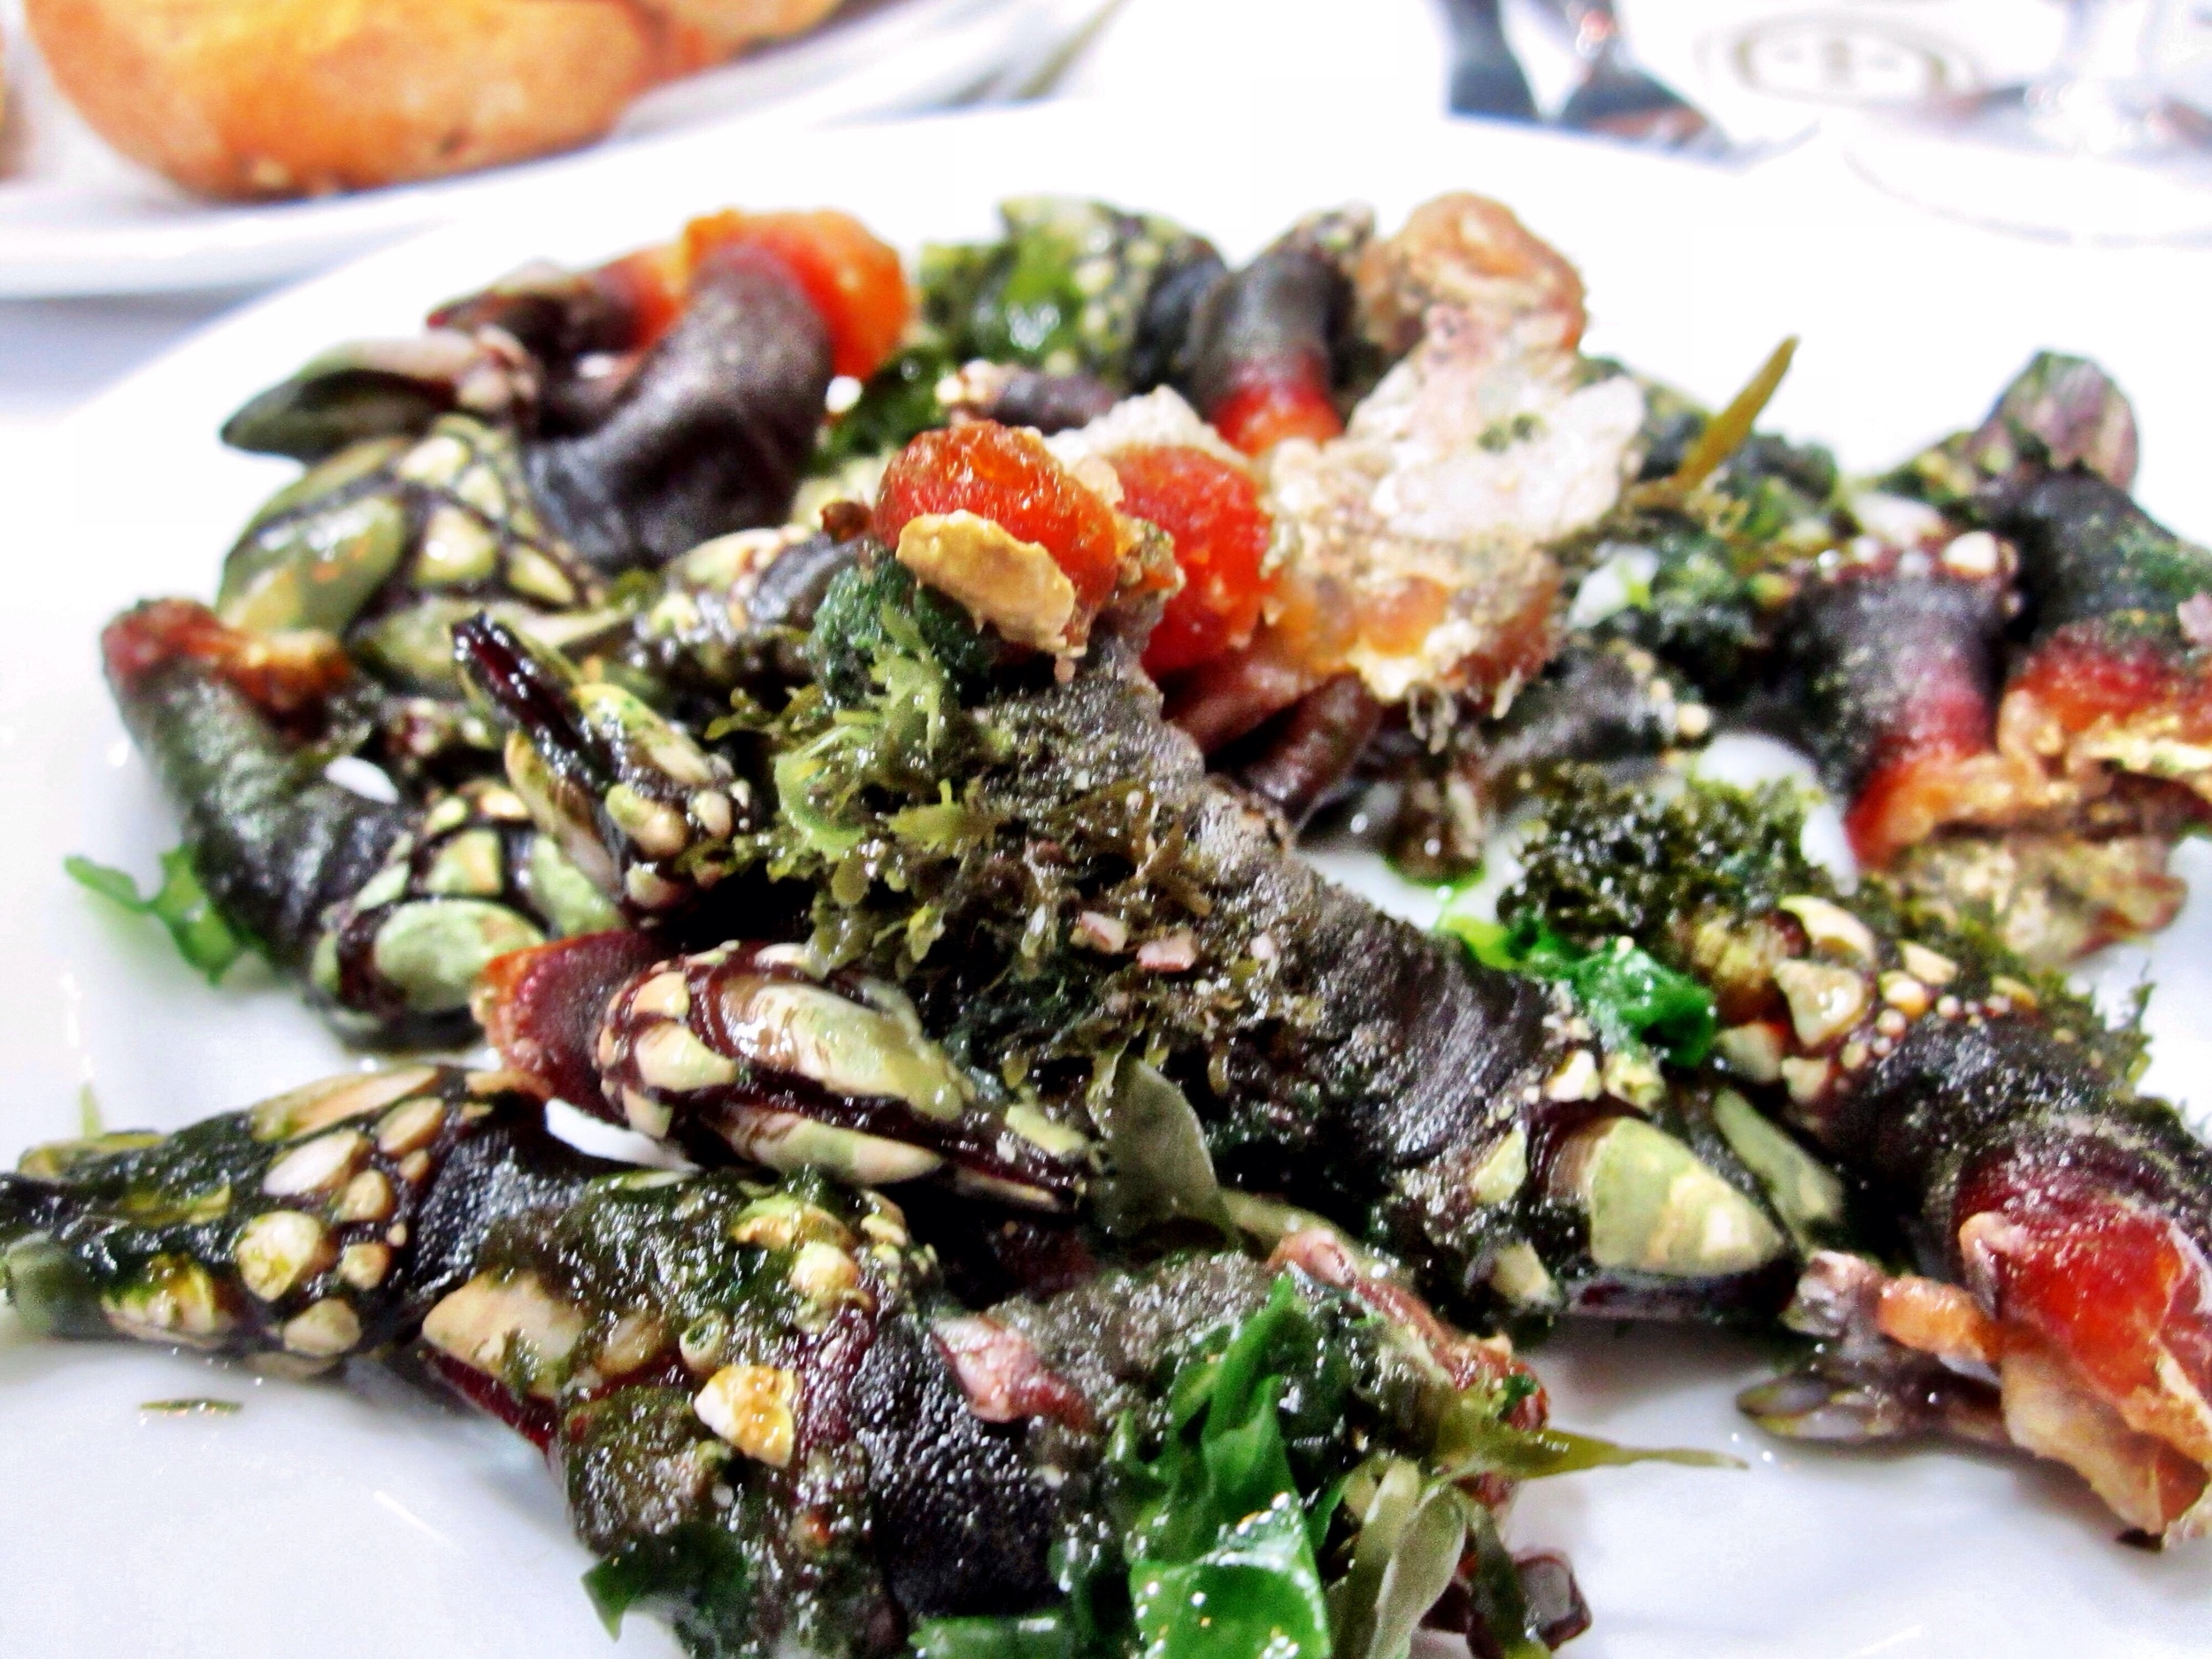 A giant plate of steaming barnacles at Cervejaria Ramiro in Lisbon